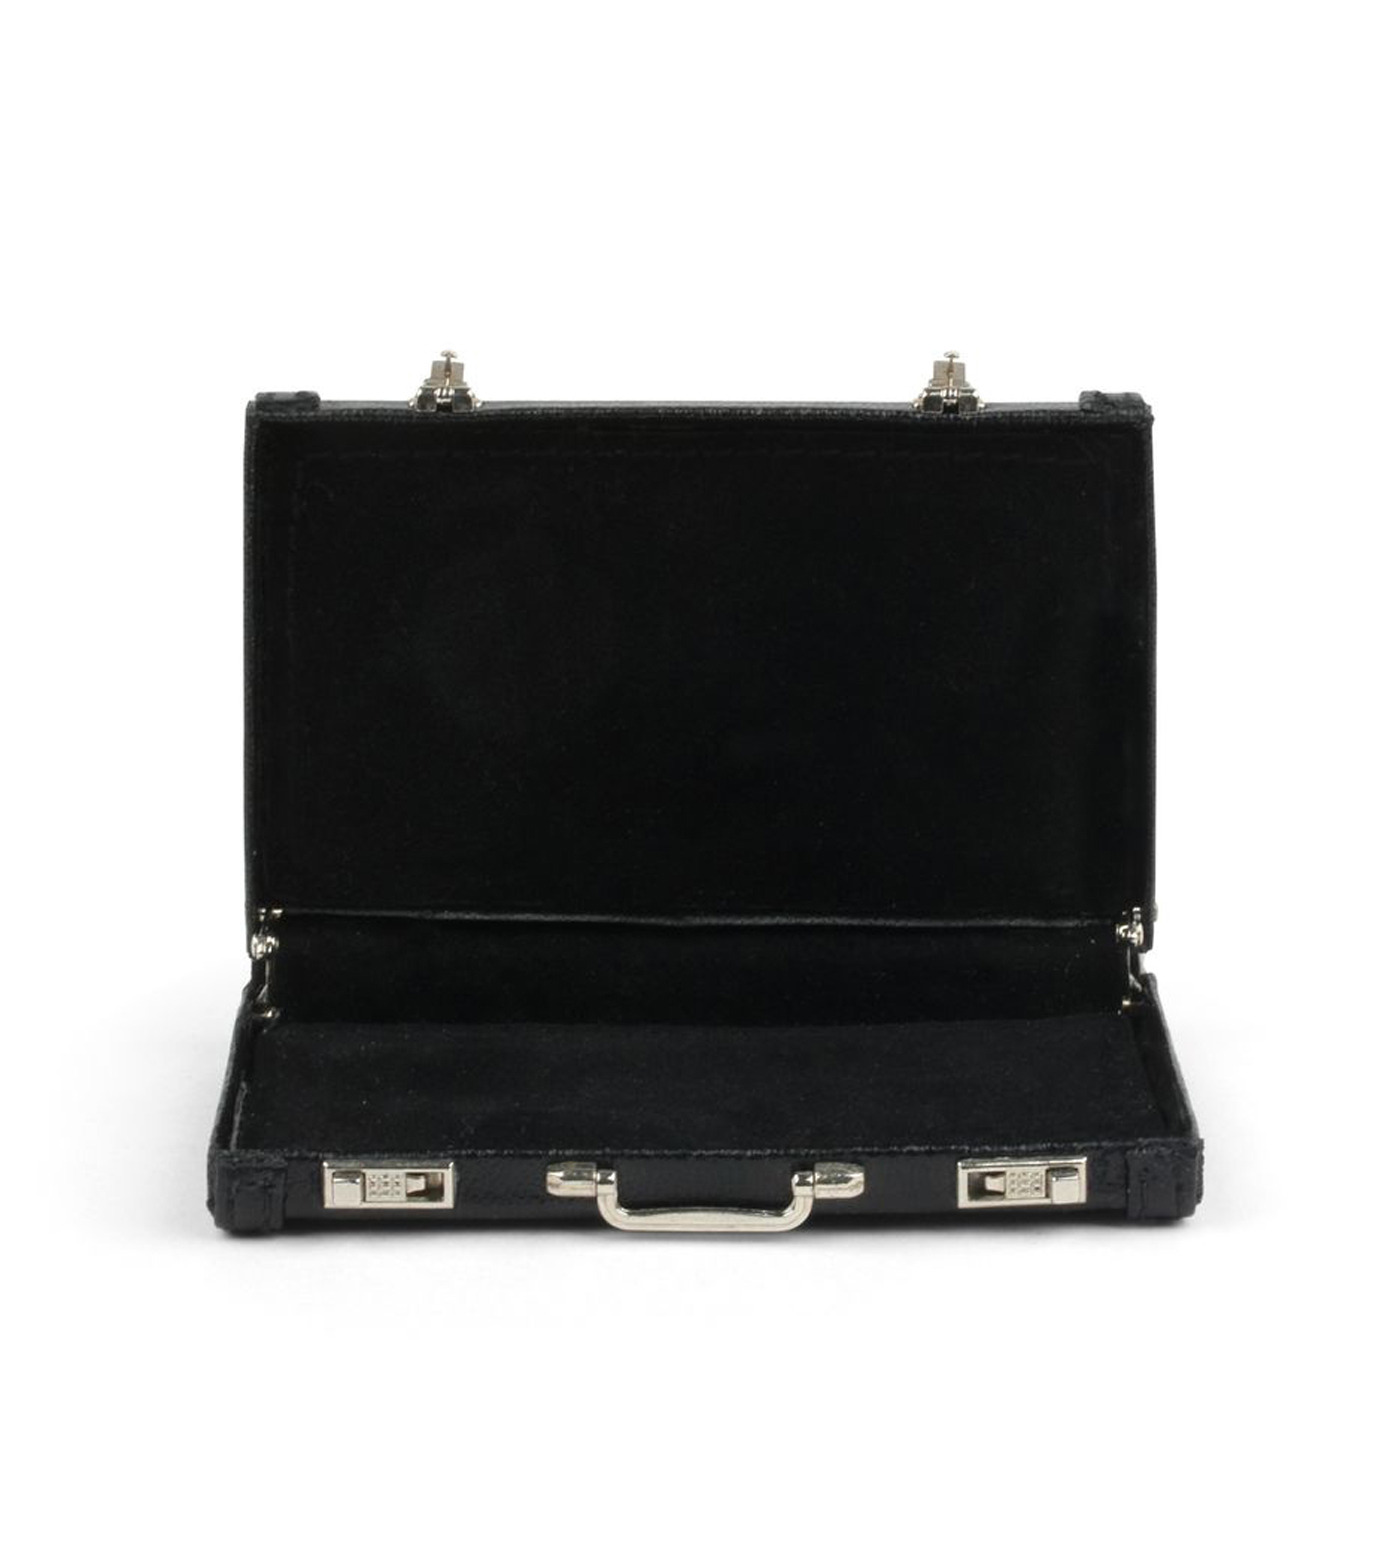 Kikker Land(キッカーランド)のMini Briefcase Black-BLACK(アザーズ/others)-2543BK-13 拡大詳細画像3